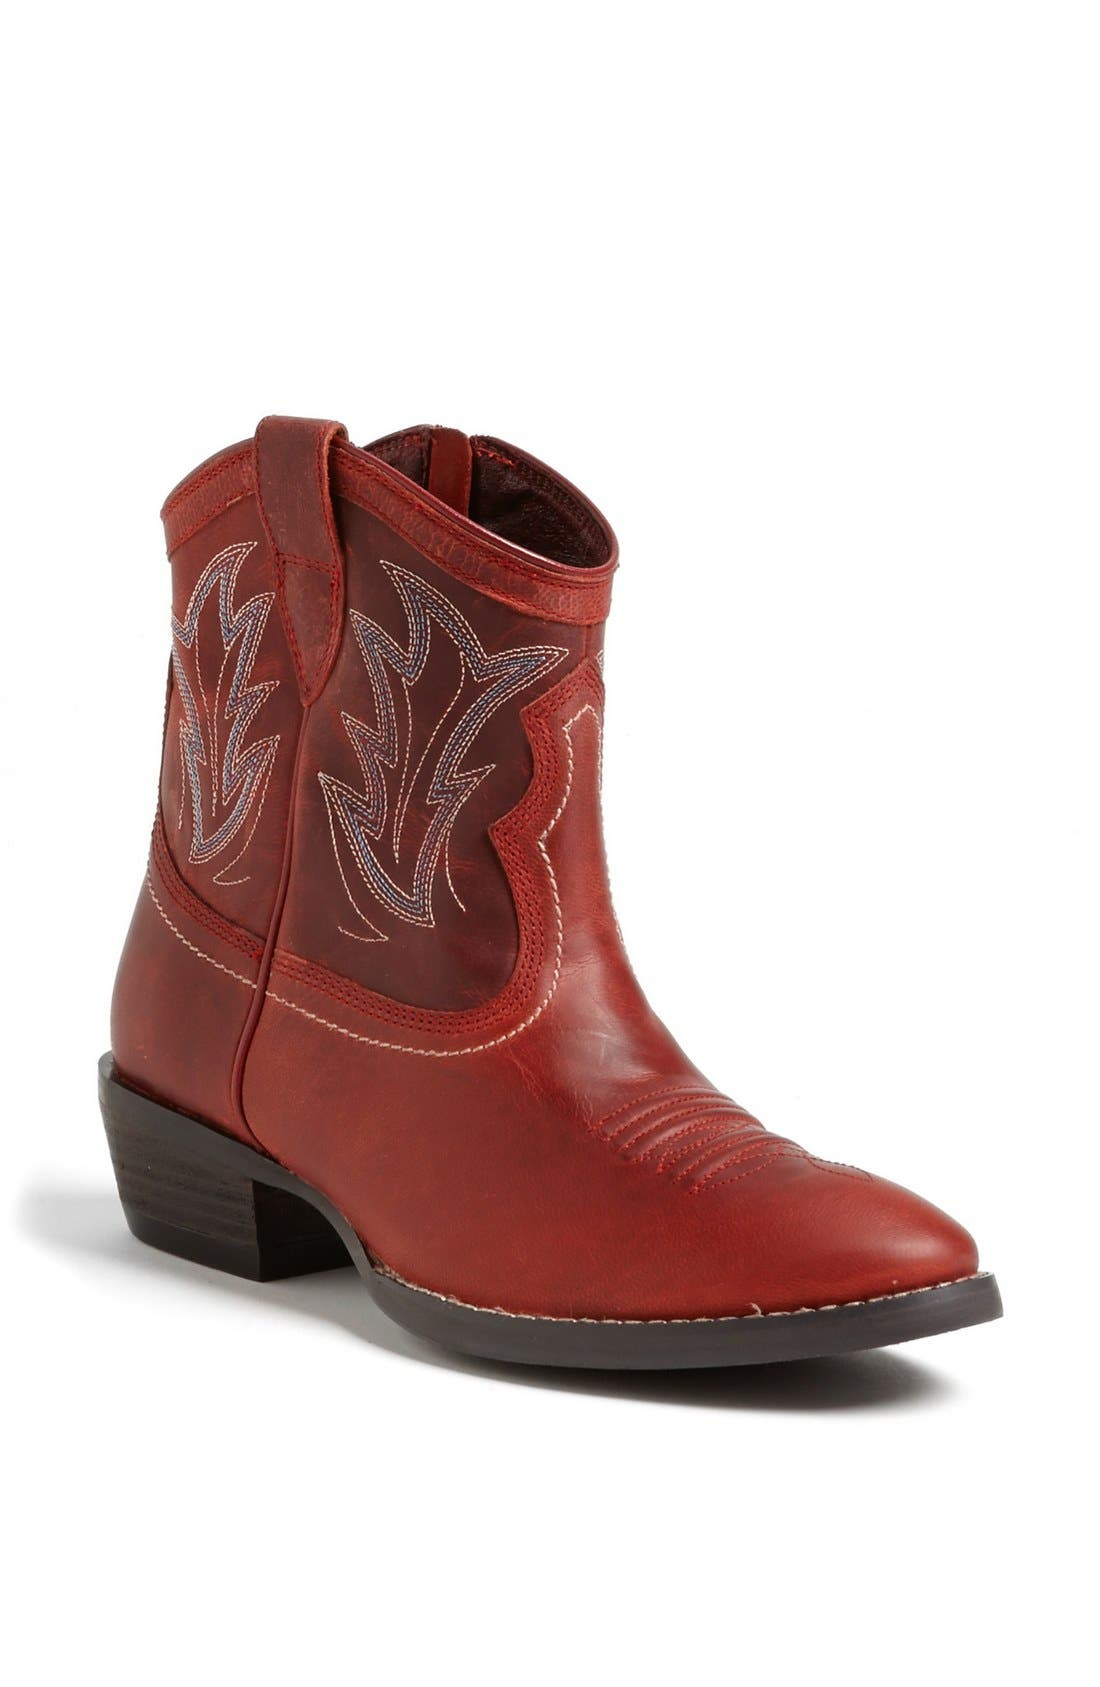 Alternate Image 1 Selected - Ariat 'Billie' Boot